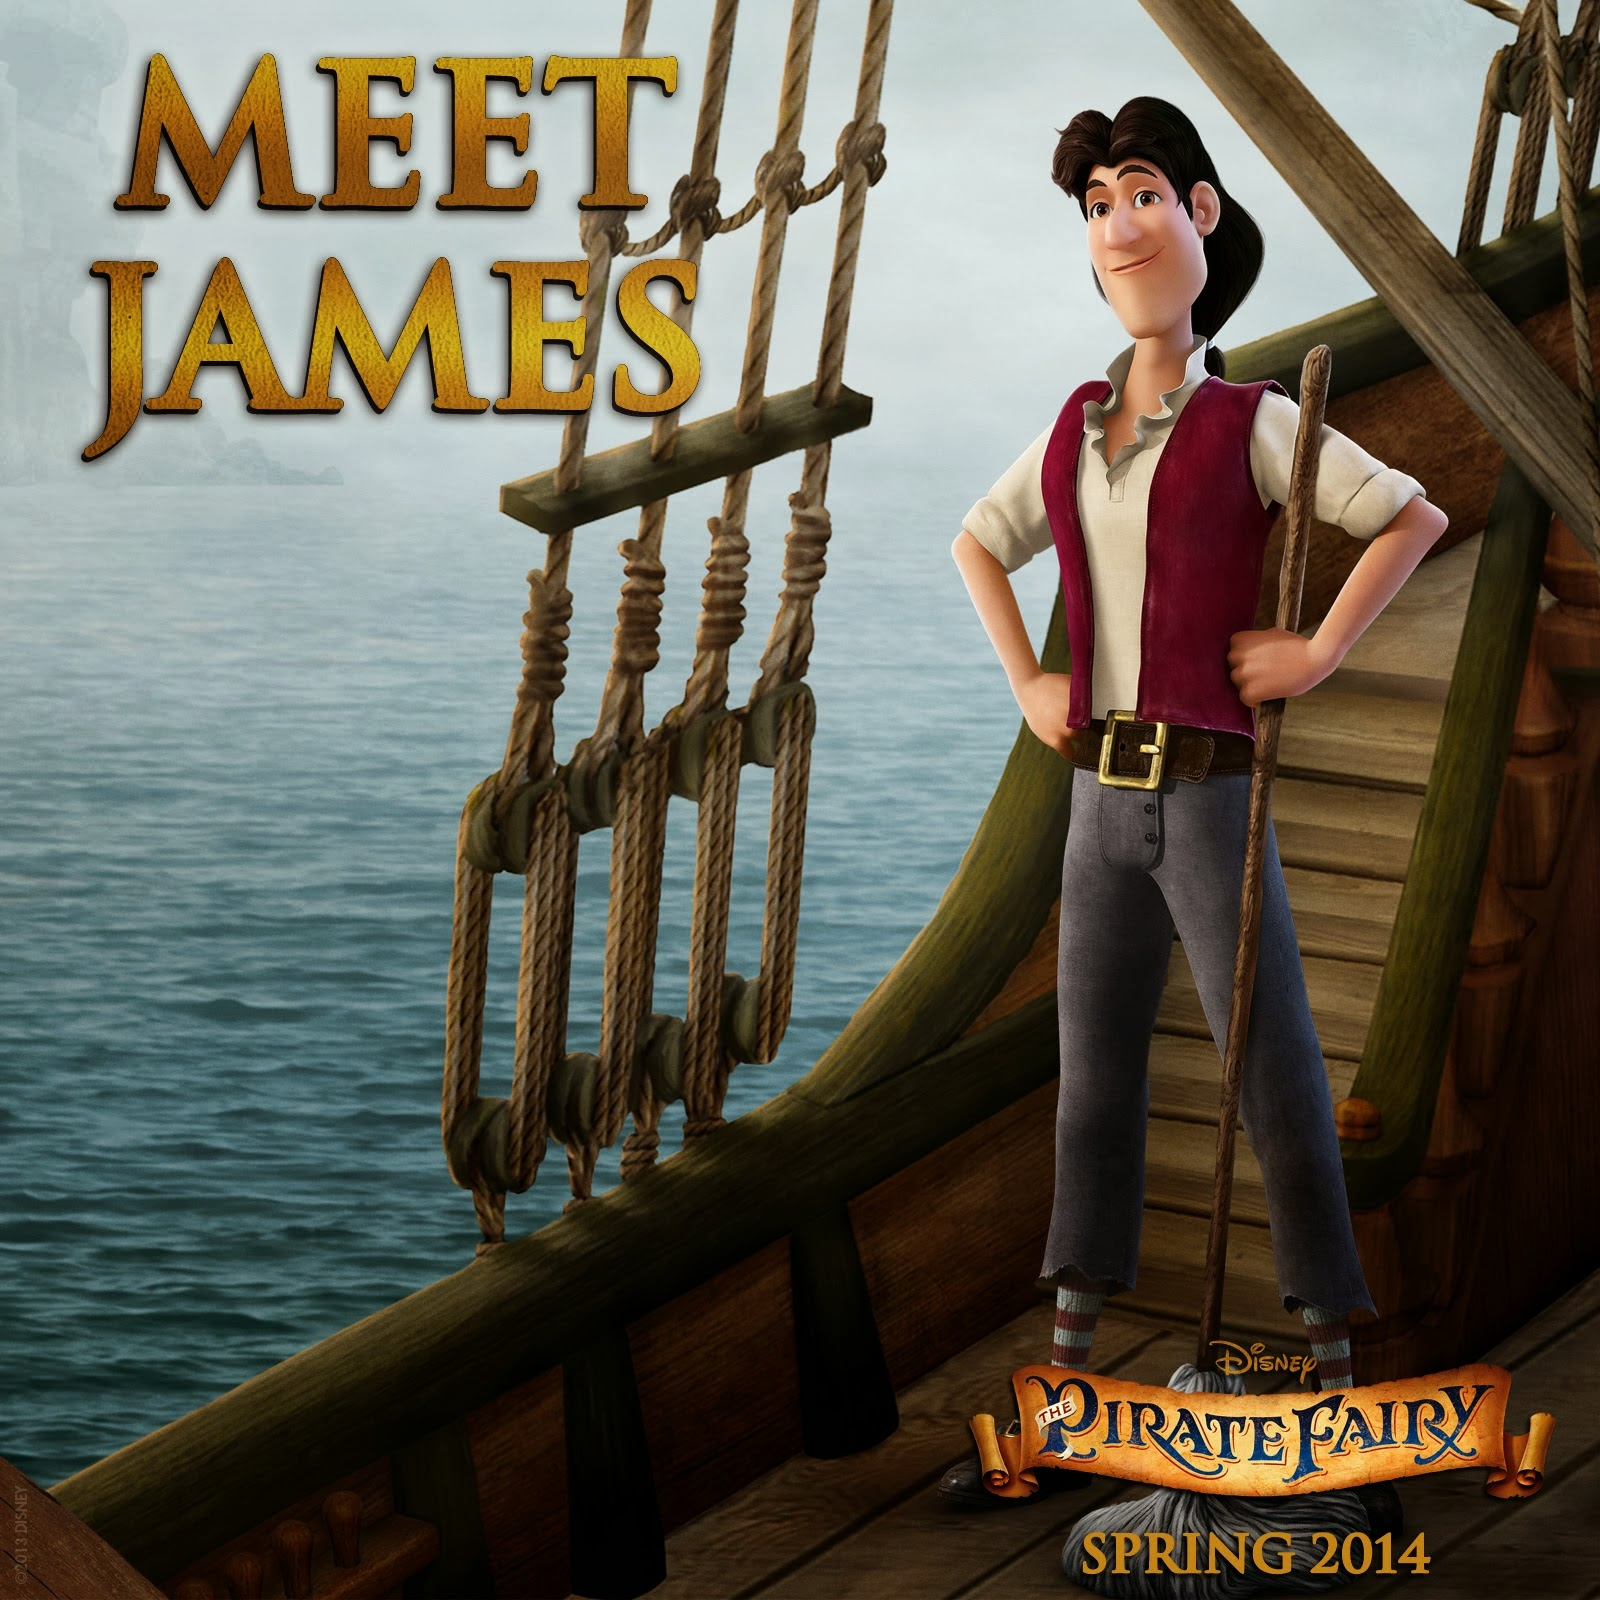 ��� ���� ������ ���� ������� The Pirate Fairy 2015 ����� PF MEET JAMES.jpg